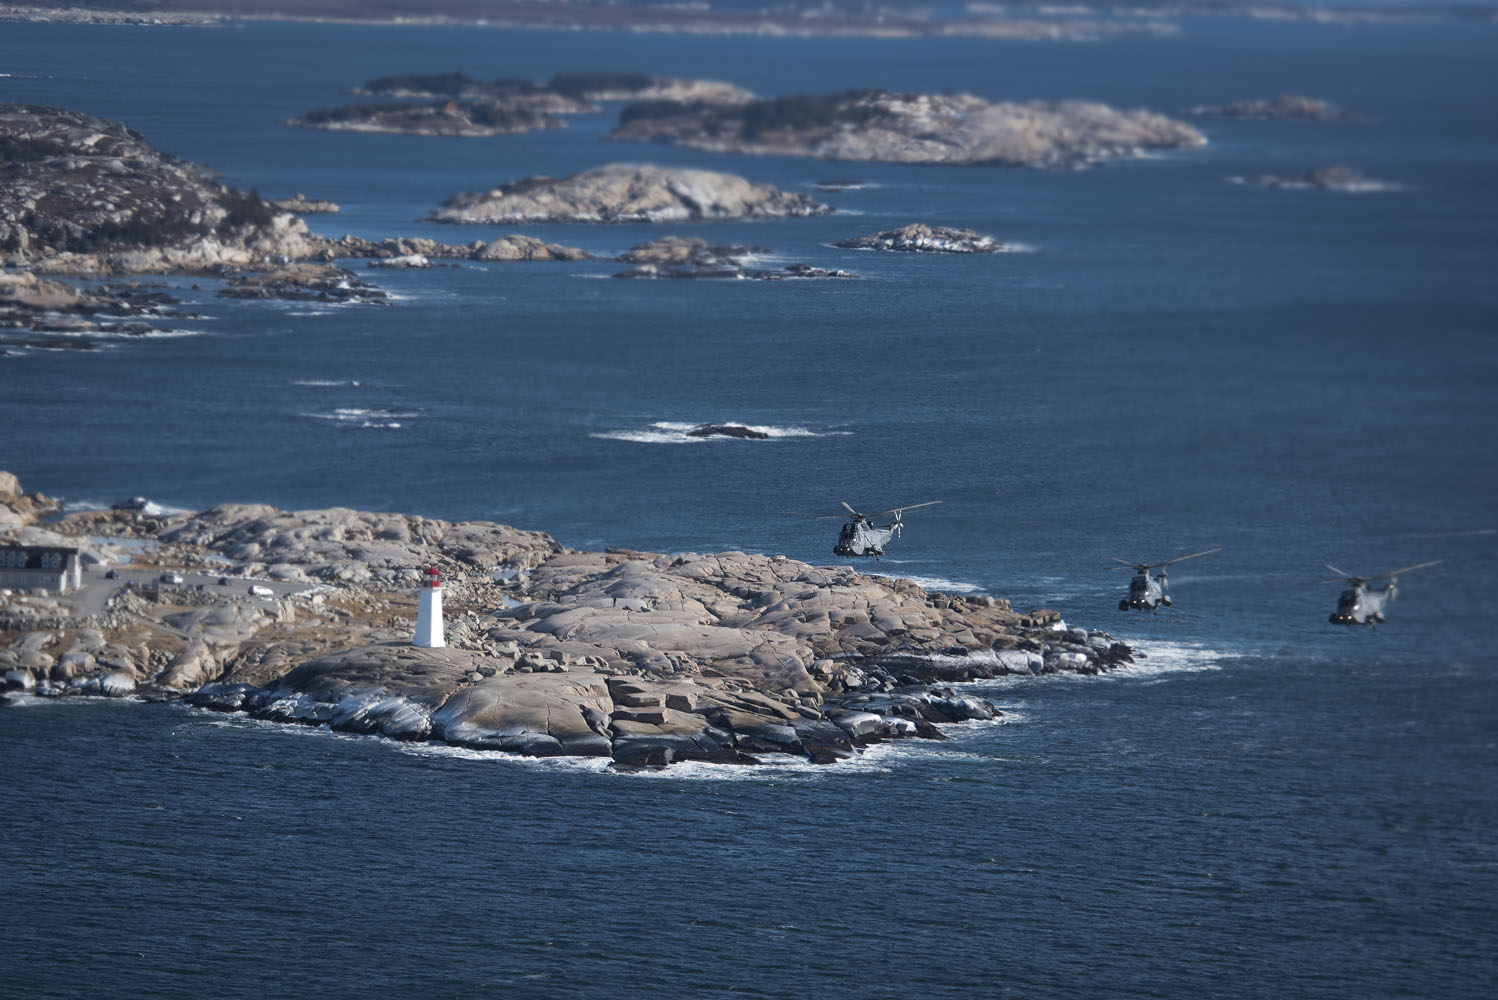 Three Sea King helicopters from 423 Maritime Helicopter Squadron, based at 12 Wing Shearwater, Nova Scotia, fly over Peggy's Cove and its iconic lighthouse on January 26, 2018. It was the squadron's final operational flight with Sea Kings; squadron personnel will now turn their full attention to transitioning to the RCAF's new maritime helicopter, the CH-148 Cyclone. Sea King operations on the east and west coasts will be conducted by 443 Maritime Helicopter Squadron, located in British Columbia, until the Sea King retires at the end of 2018. PHOTO: DND, SW05-2018-0015-003